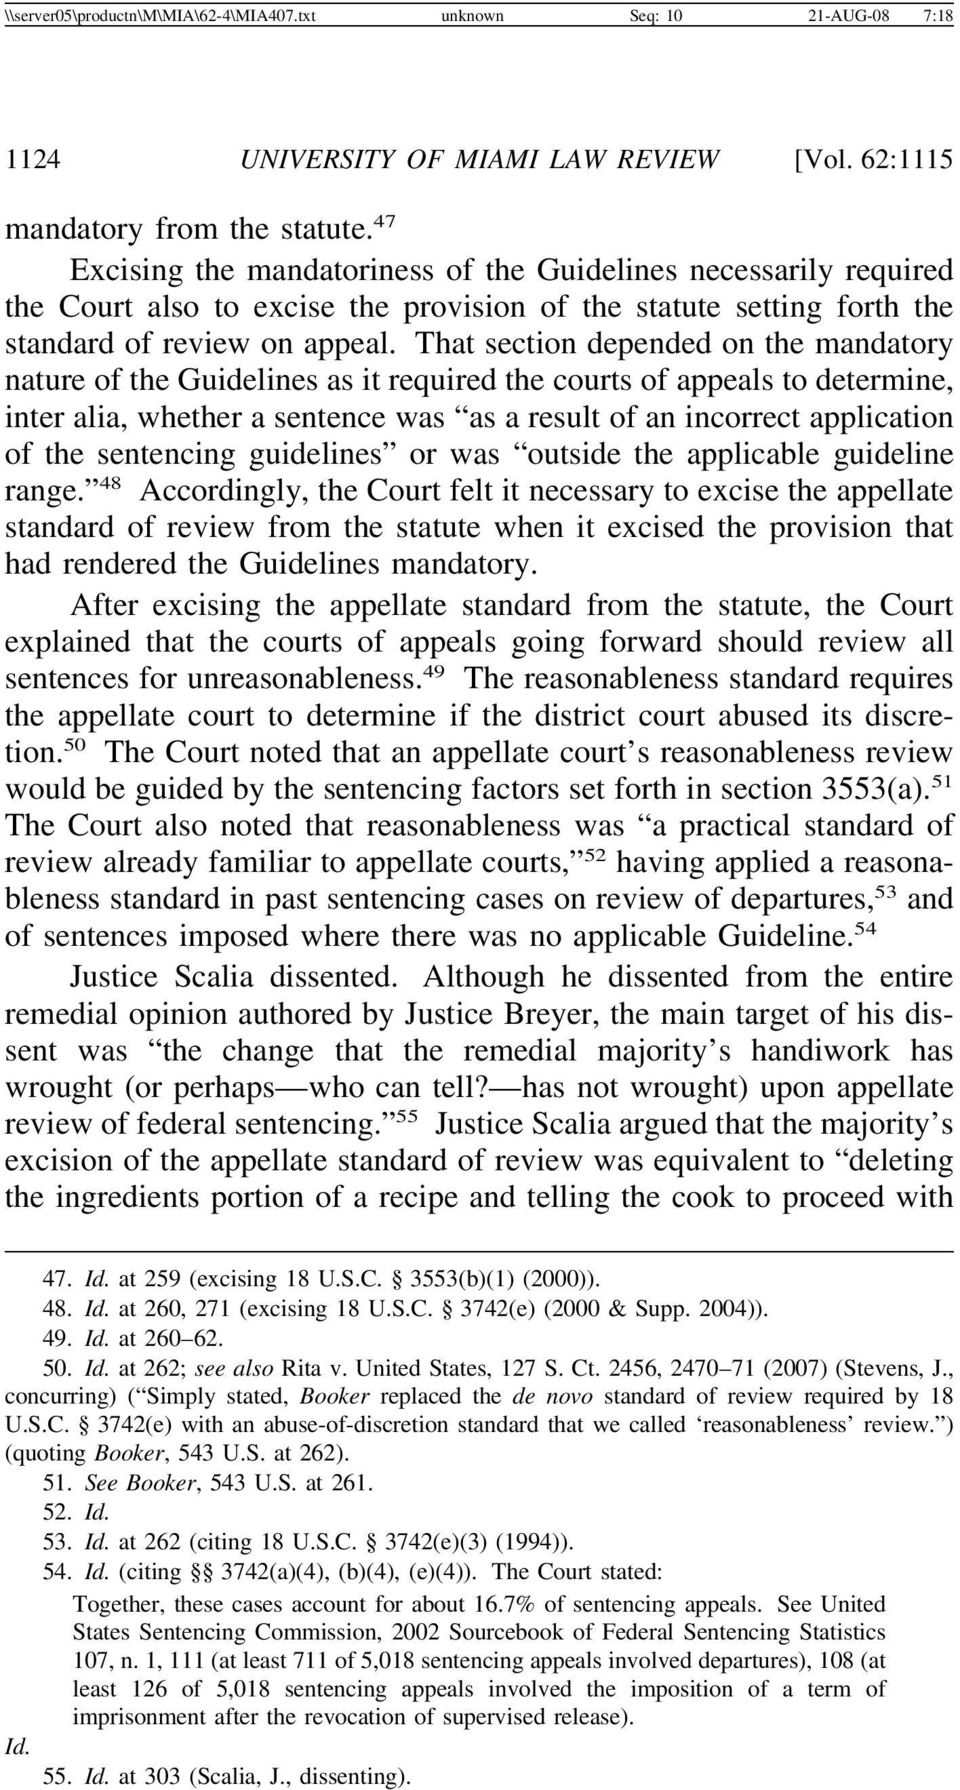 That section depended on the mandatory nature of the Guidelines as it required the courts of appeals to determine, inter alia, whether a sentence was as a result of an incorrect application of the